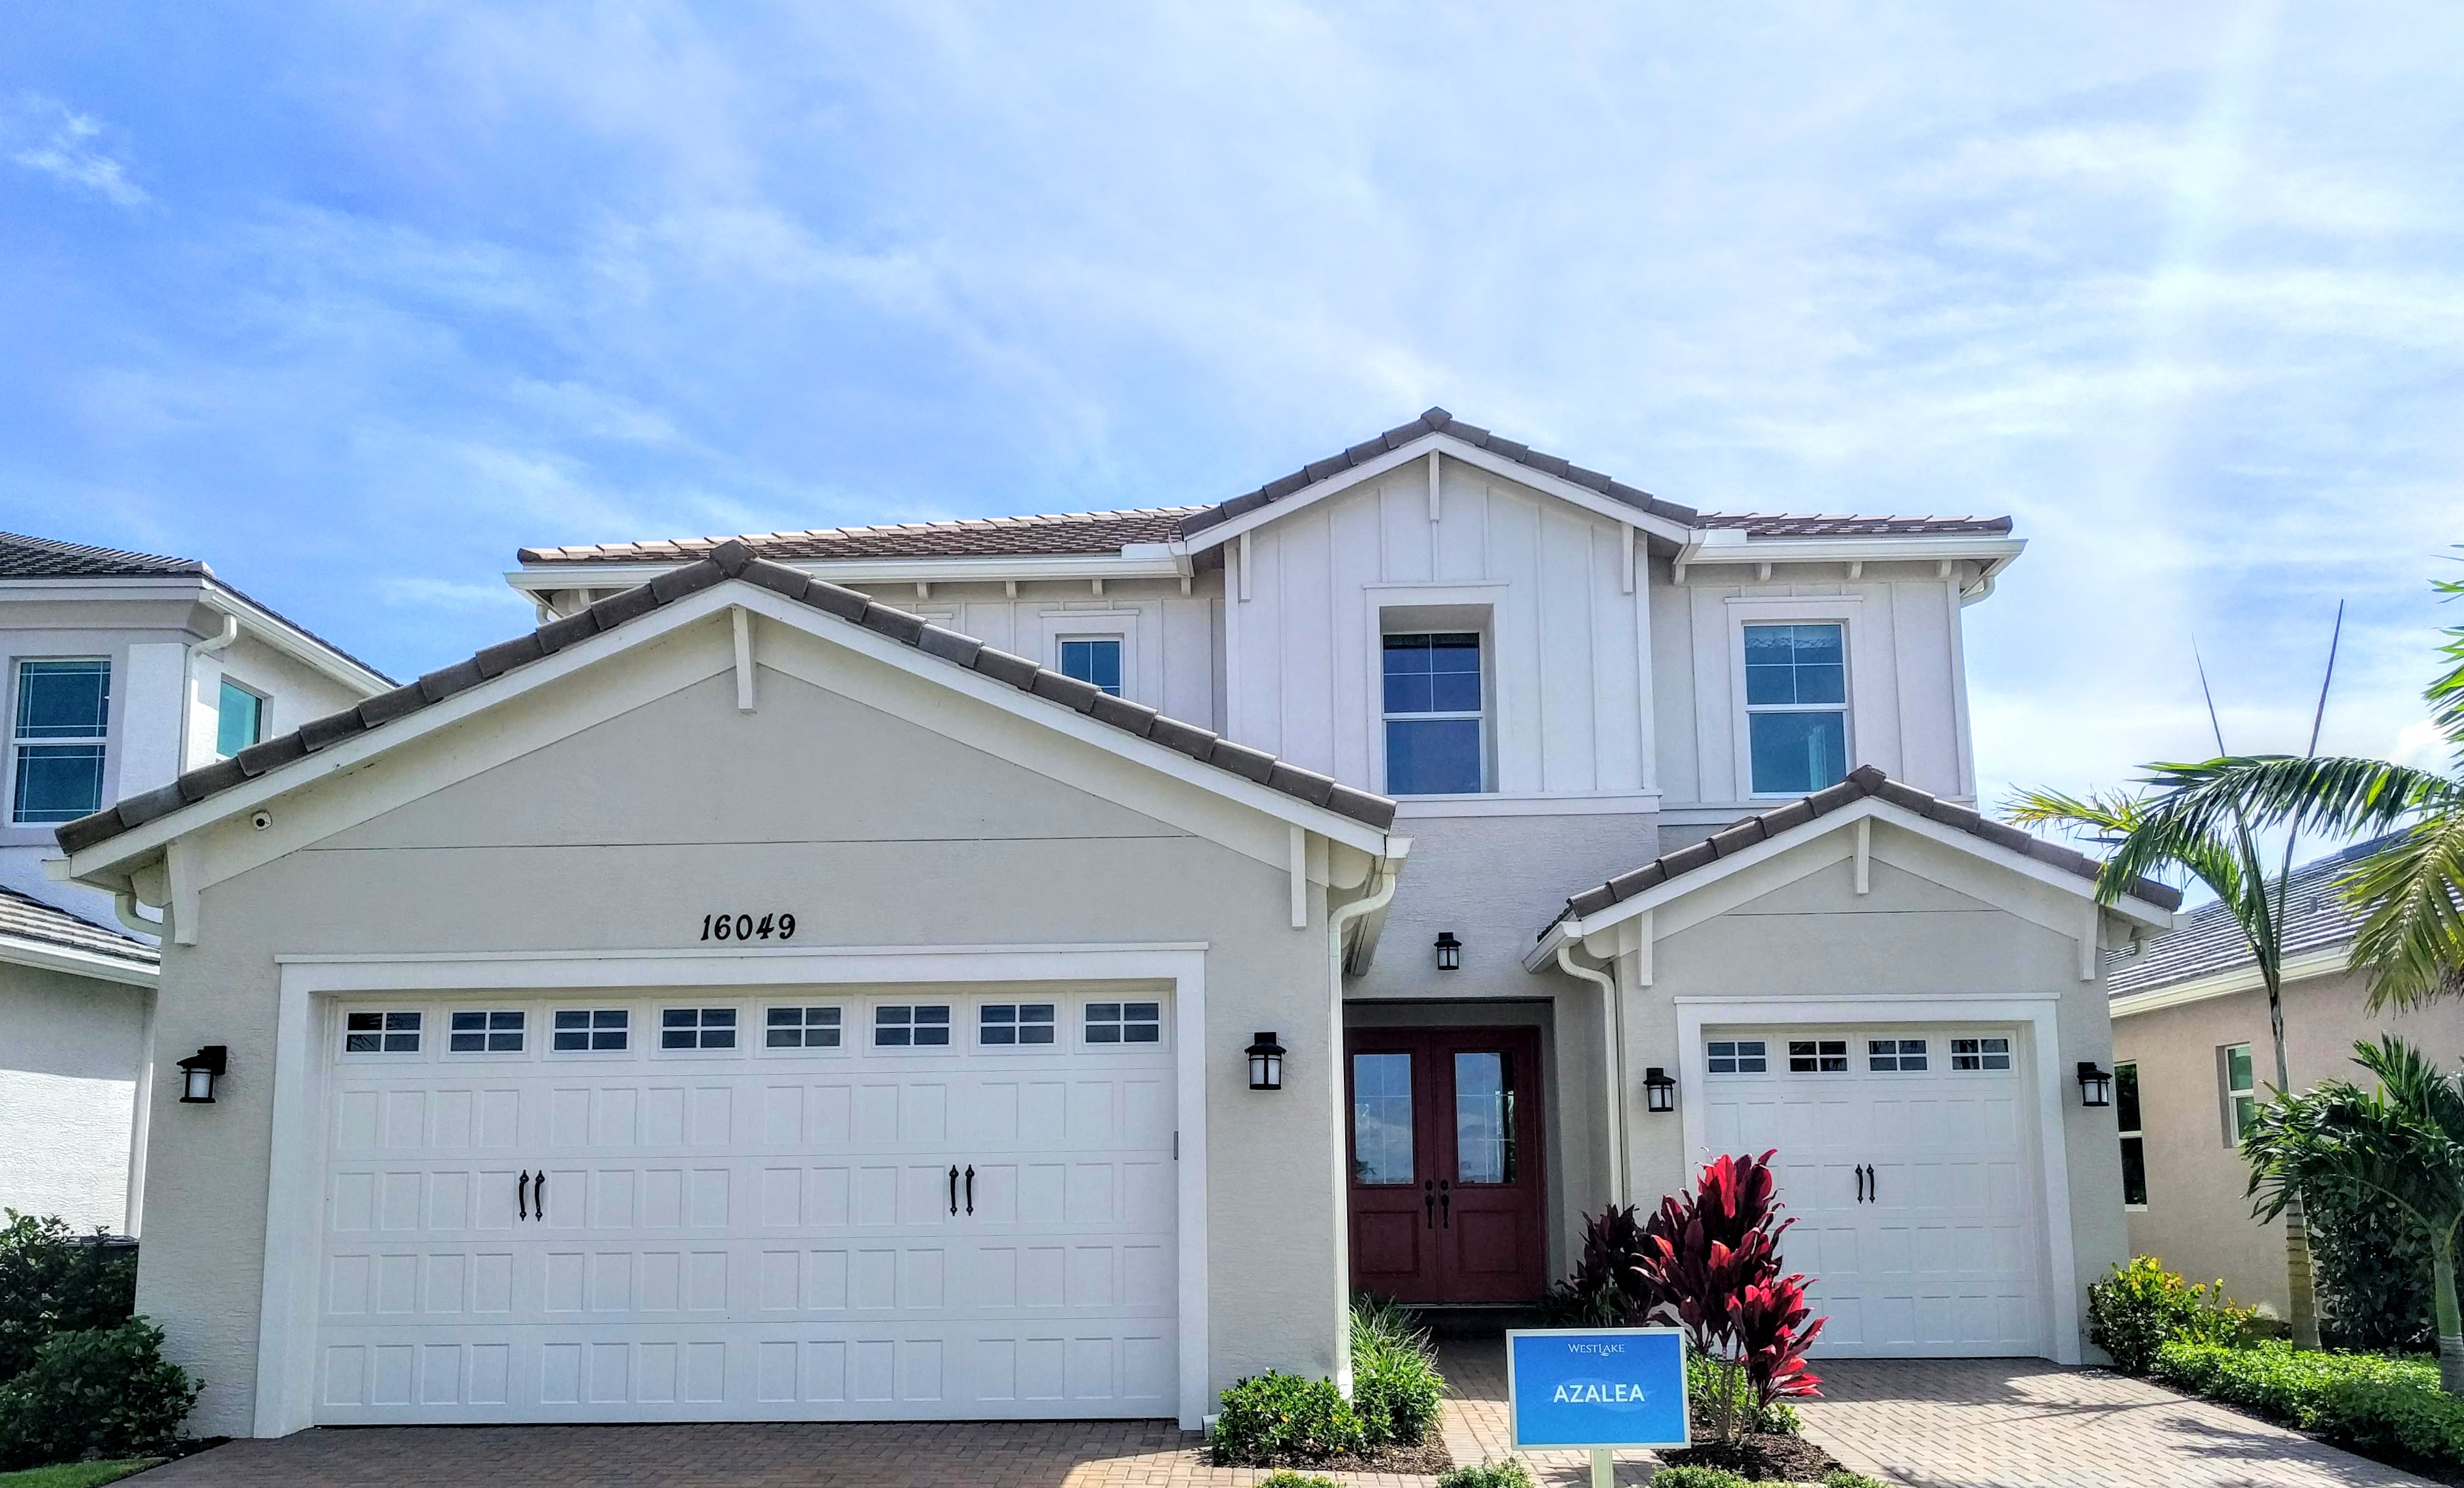 New Homes For Sale In Westlake Florida